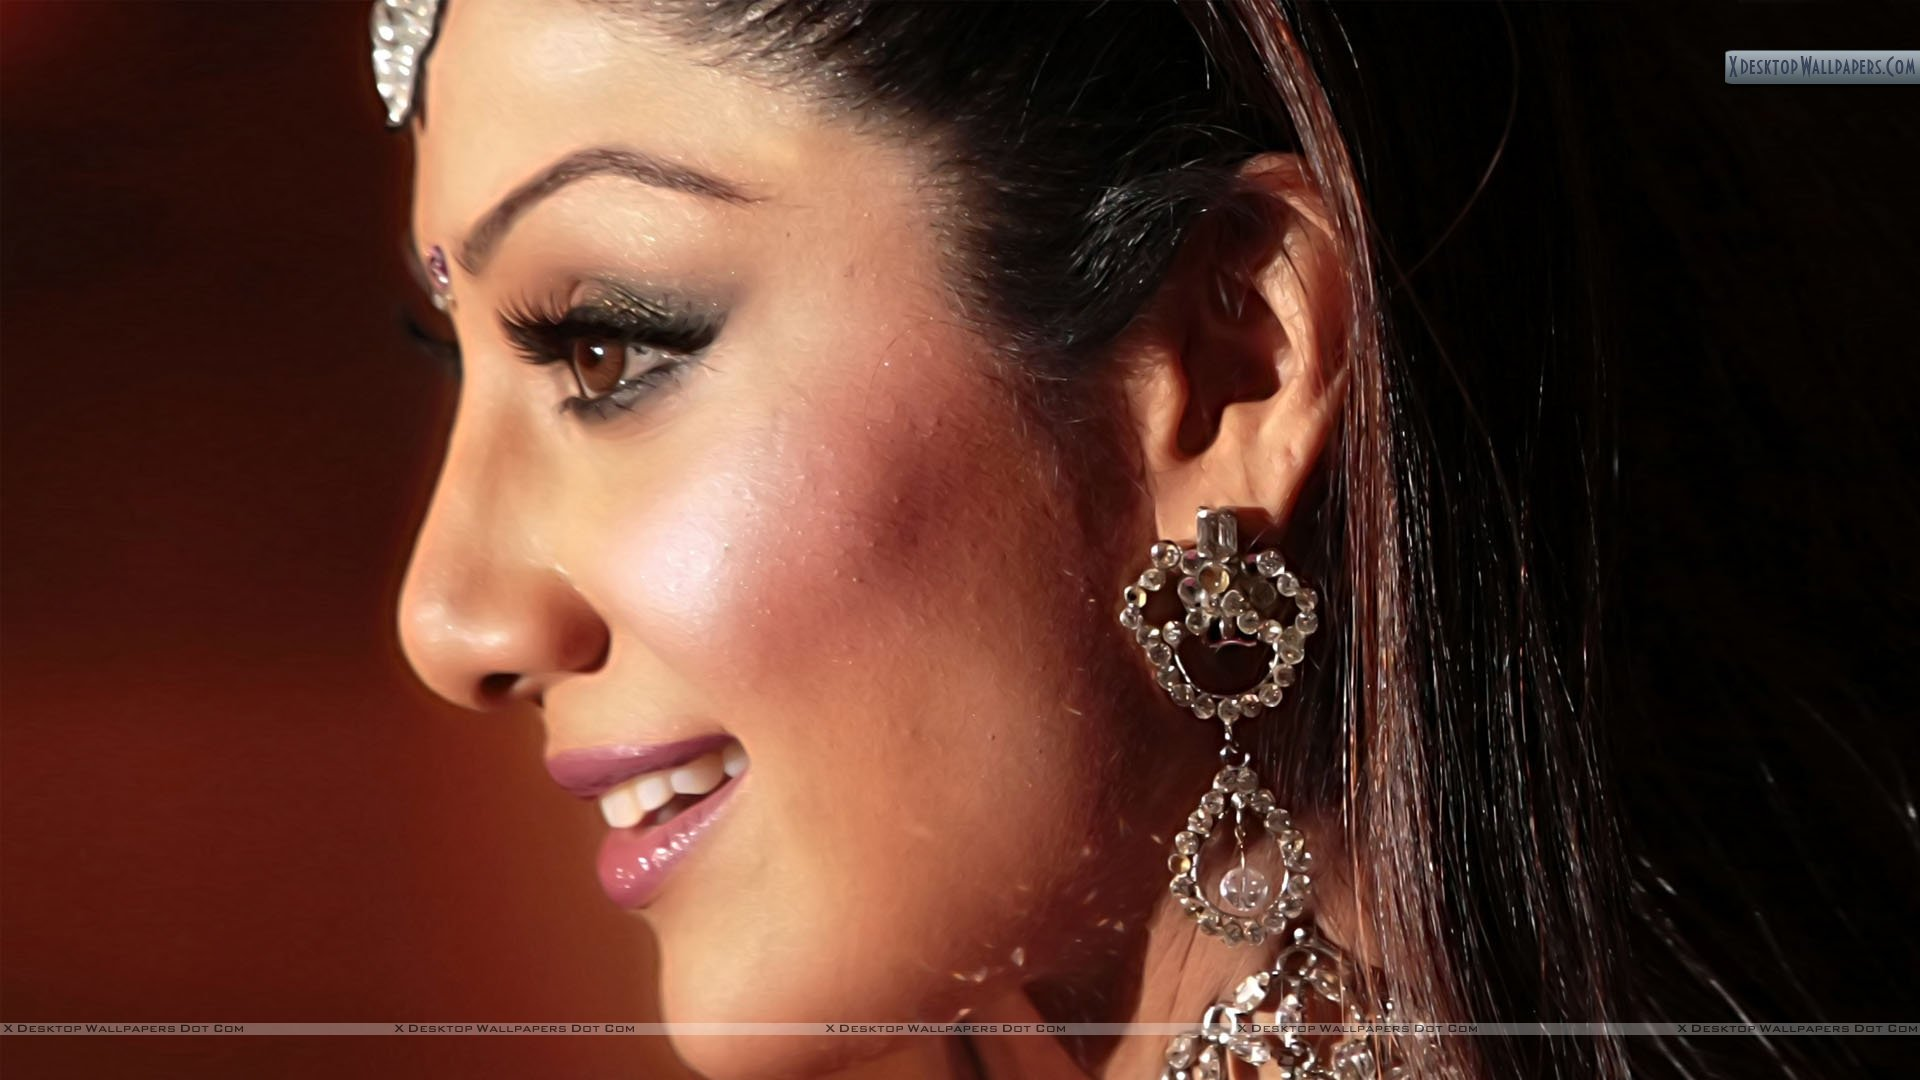 Shilpa Shetty Side Pose Sexy Looks MISS TEEN SOUTH CAROLINA UNEARTHS GLOBAL MAP STEALING CONSPIRACY